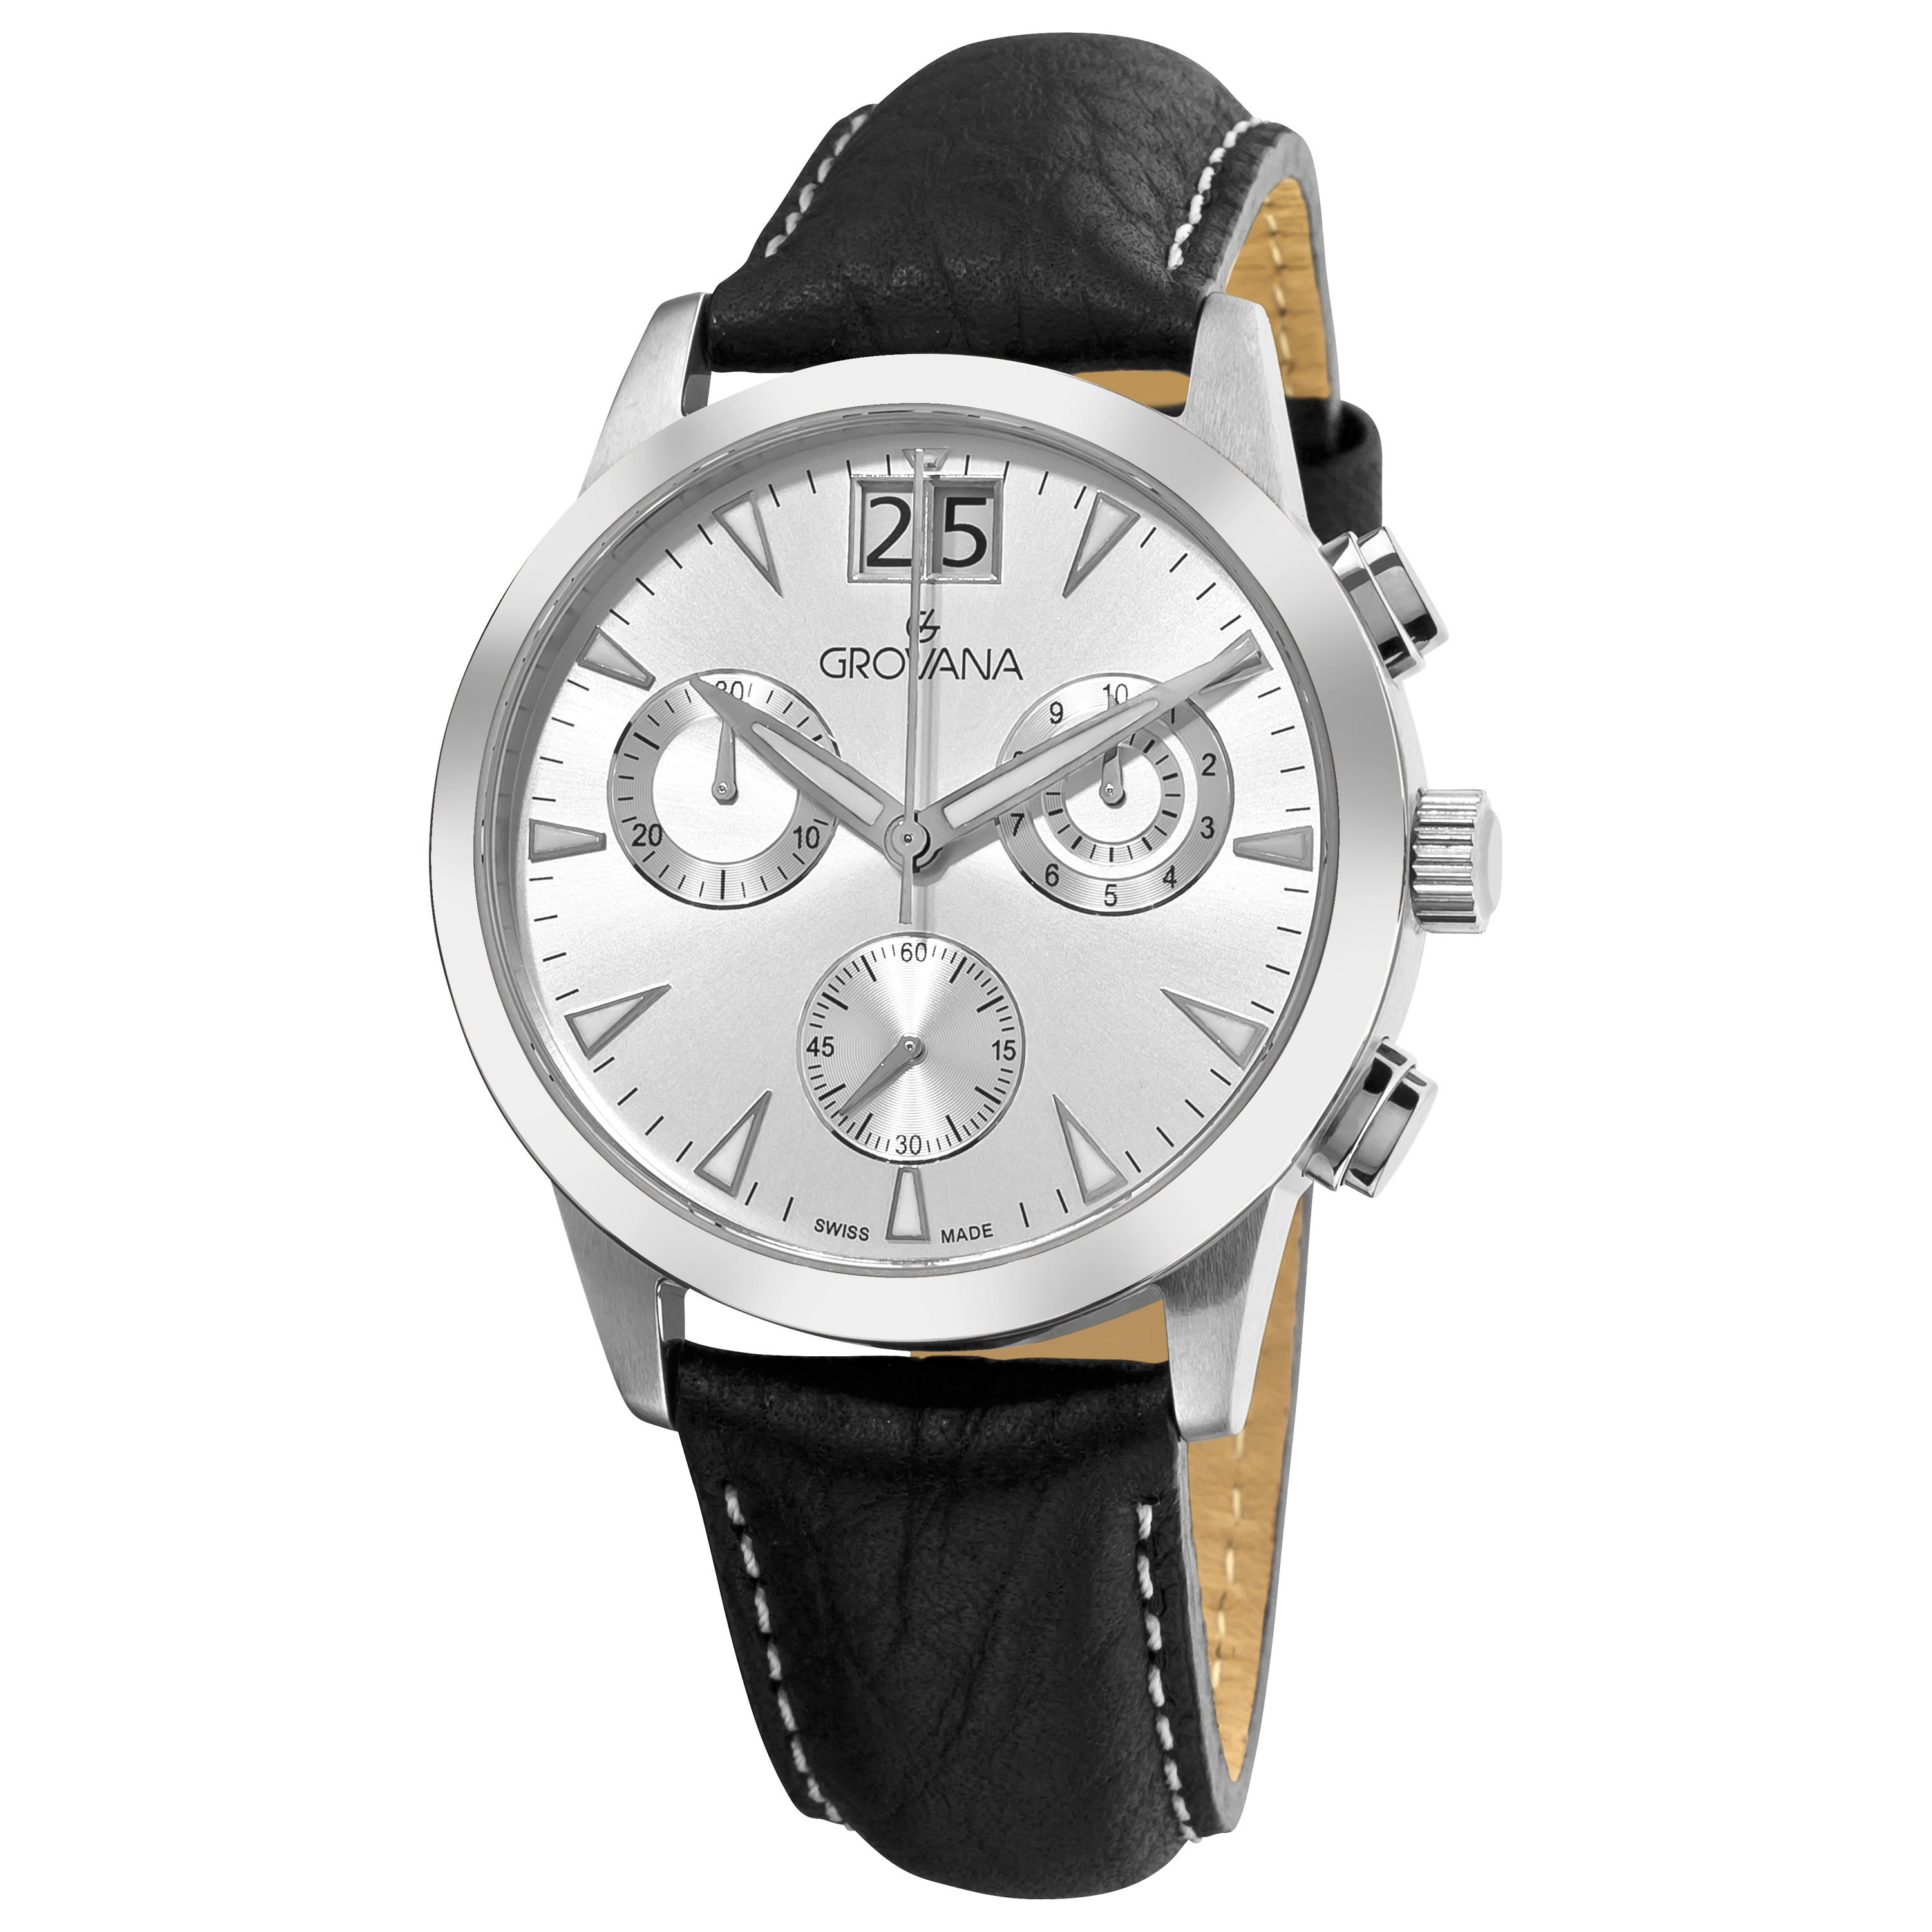 Grovana Men's 1722.9532 Silver Chronograph Dial Quartz Watch